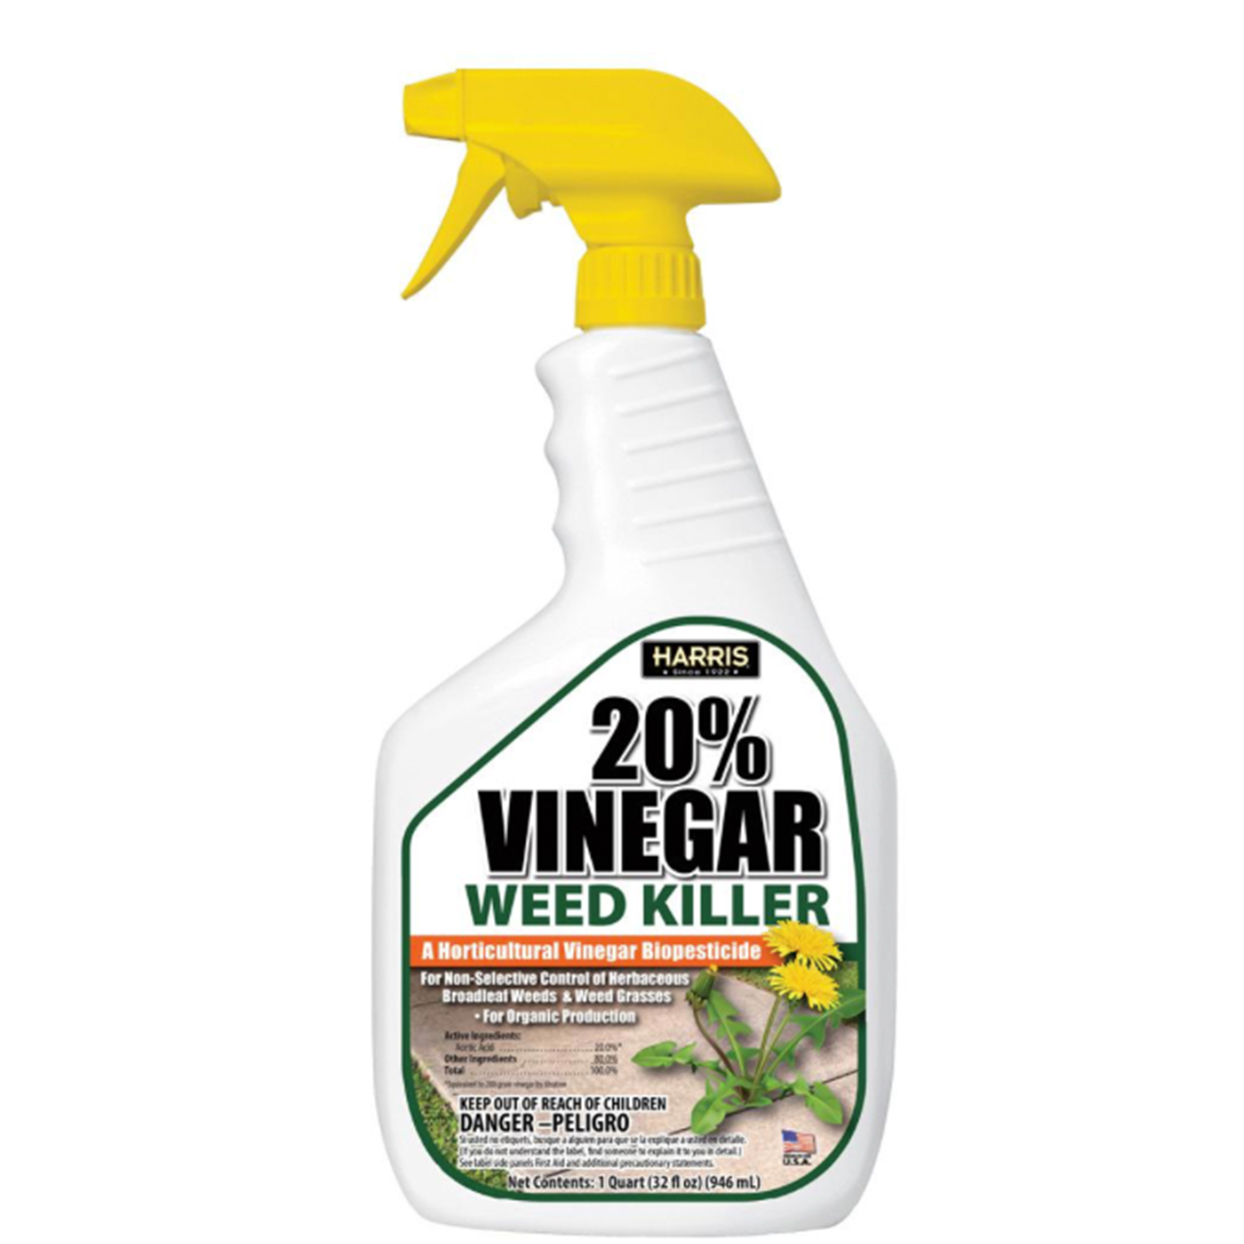 Harris vinegar weed killer